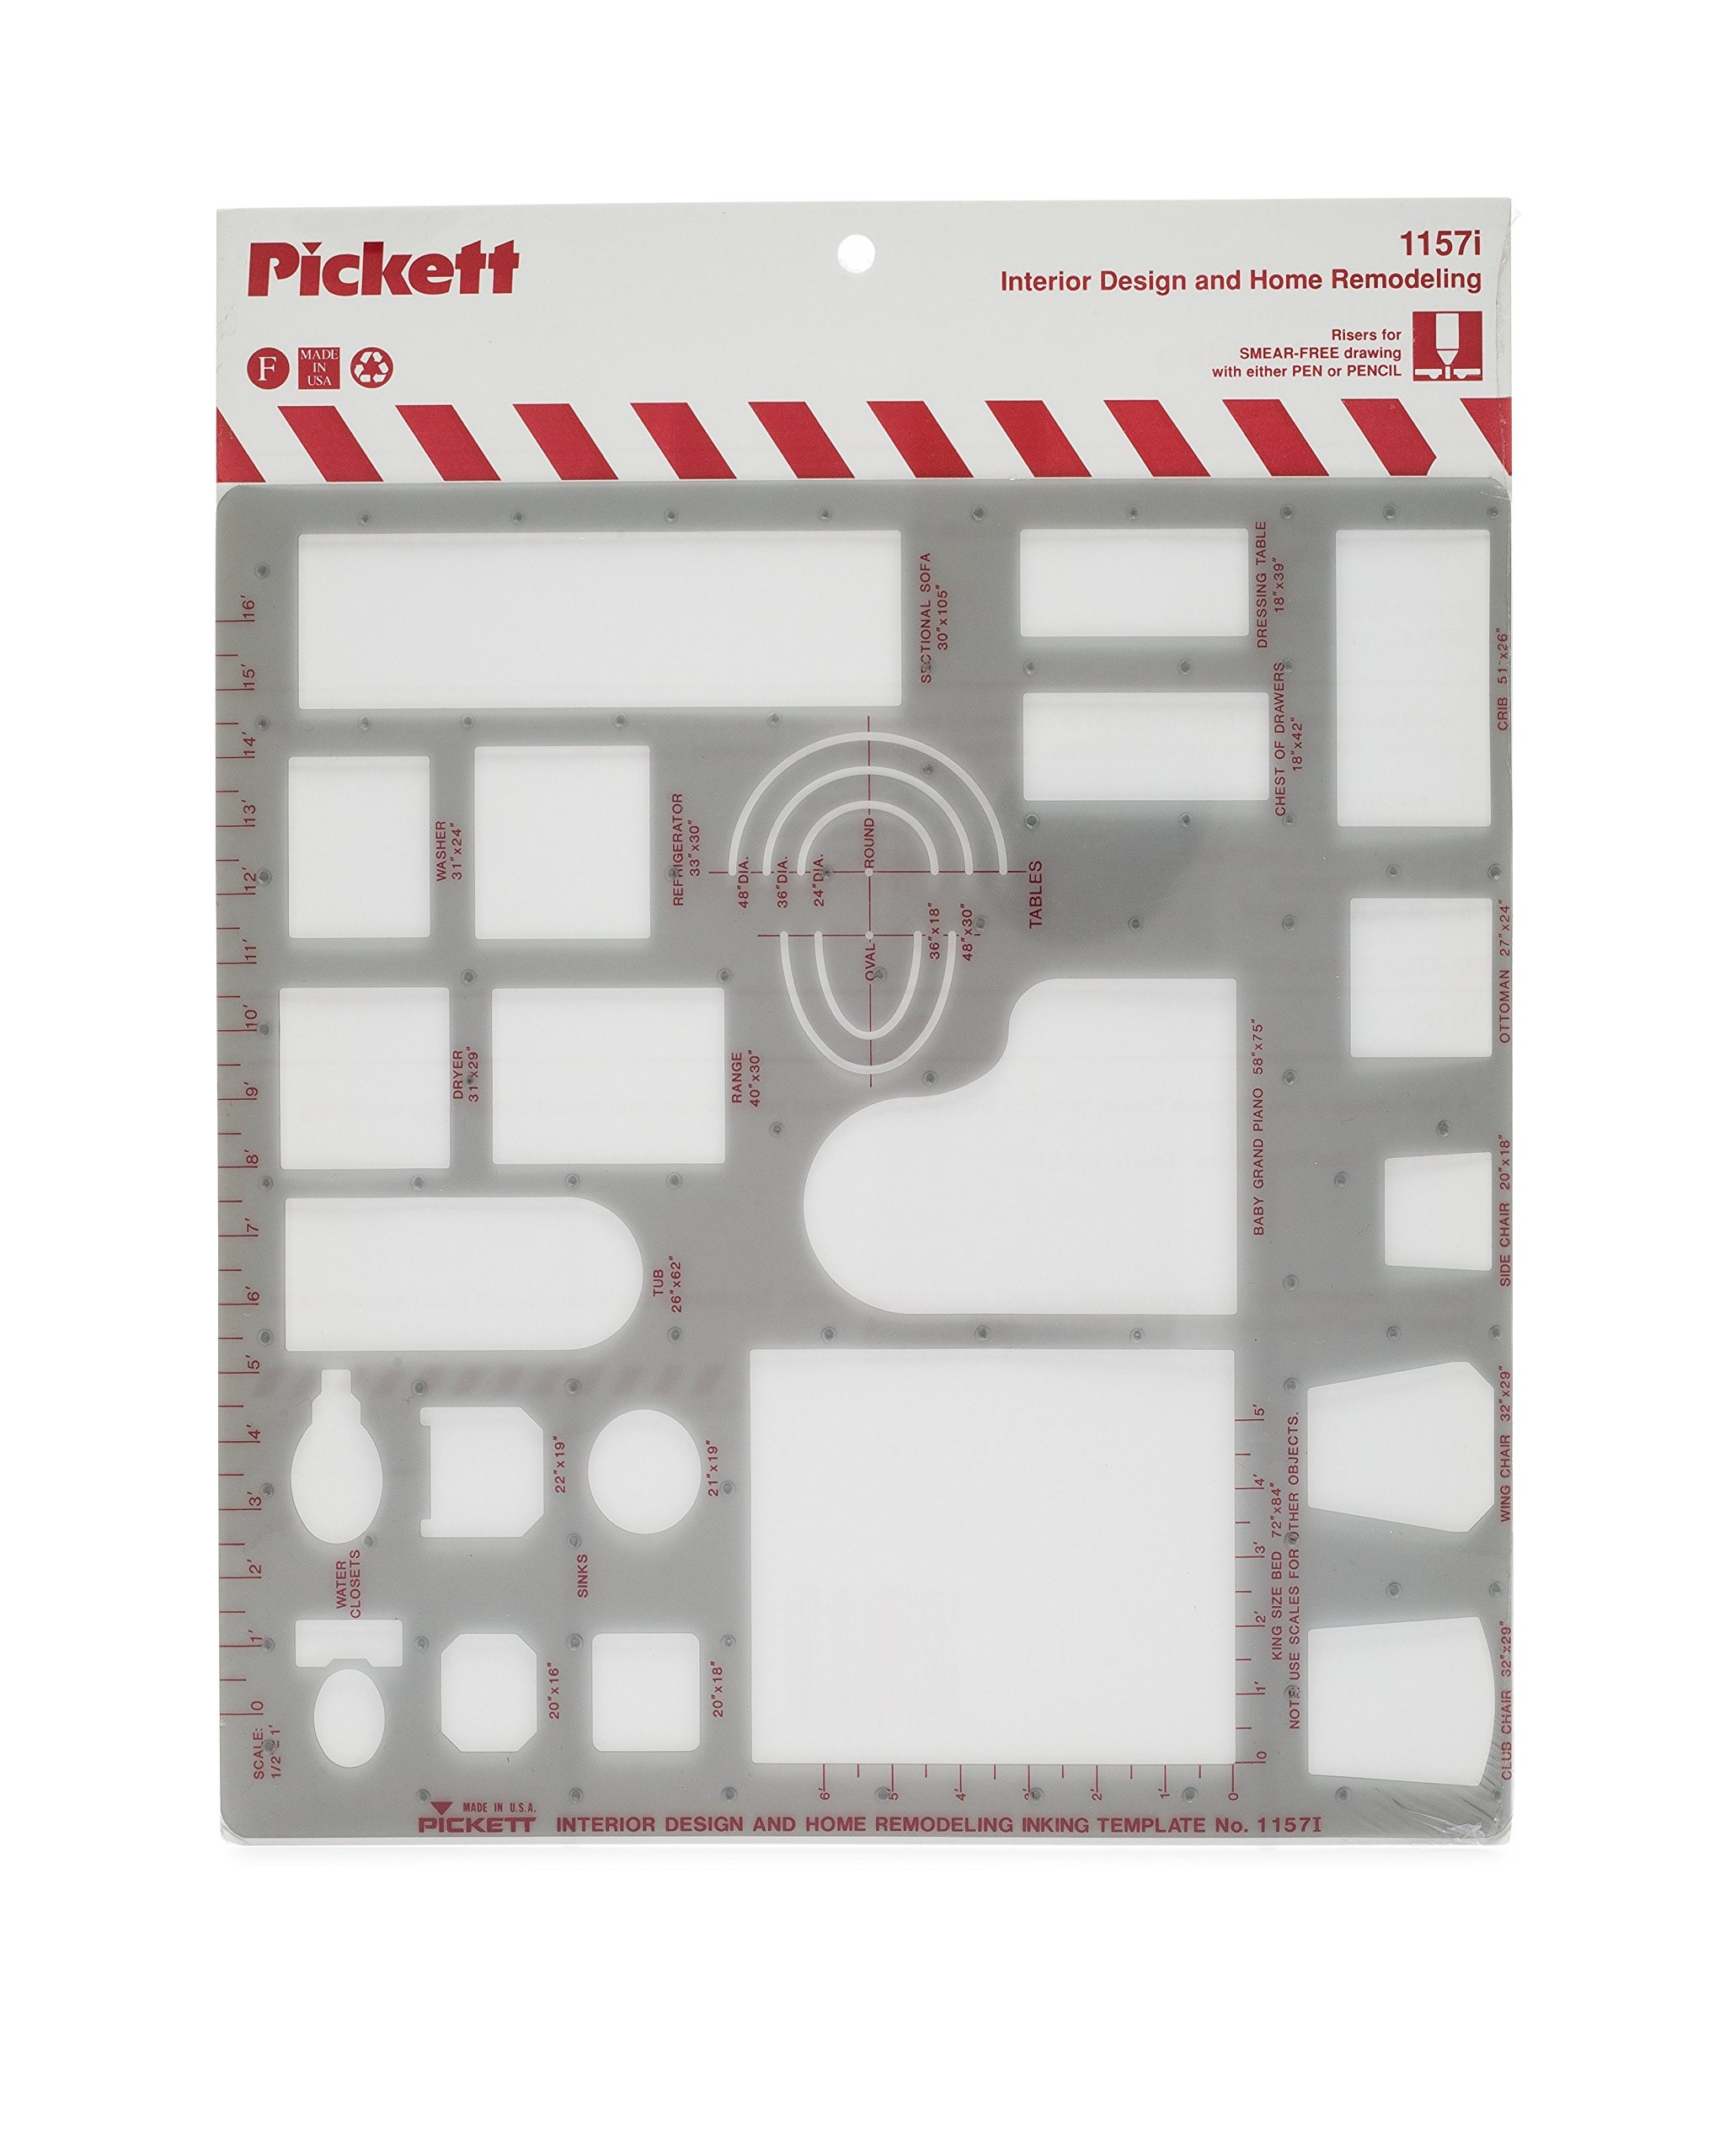 Pickett Interior Design And Home Modeling Template 1 2 Inch Scale 1157i Buy Online In Brunei Pickett Products In Brunei See Prices Reviews And Free Delivery Over Bnd100 Desertcart